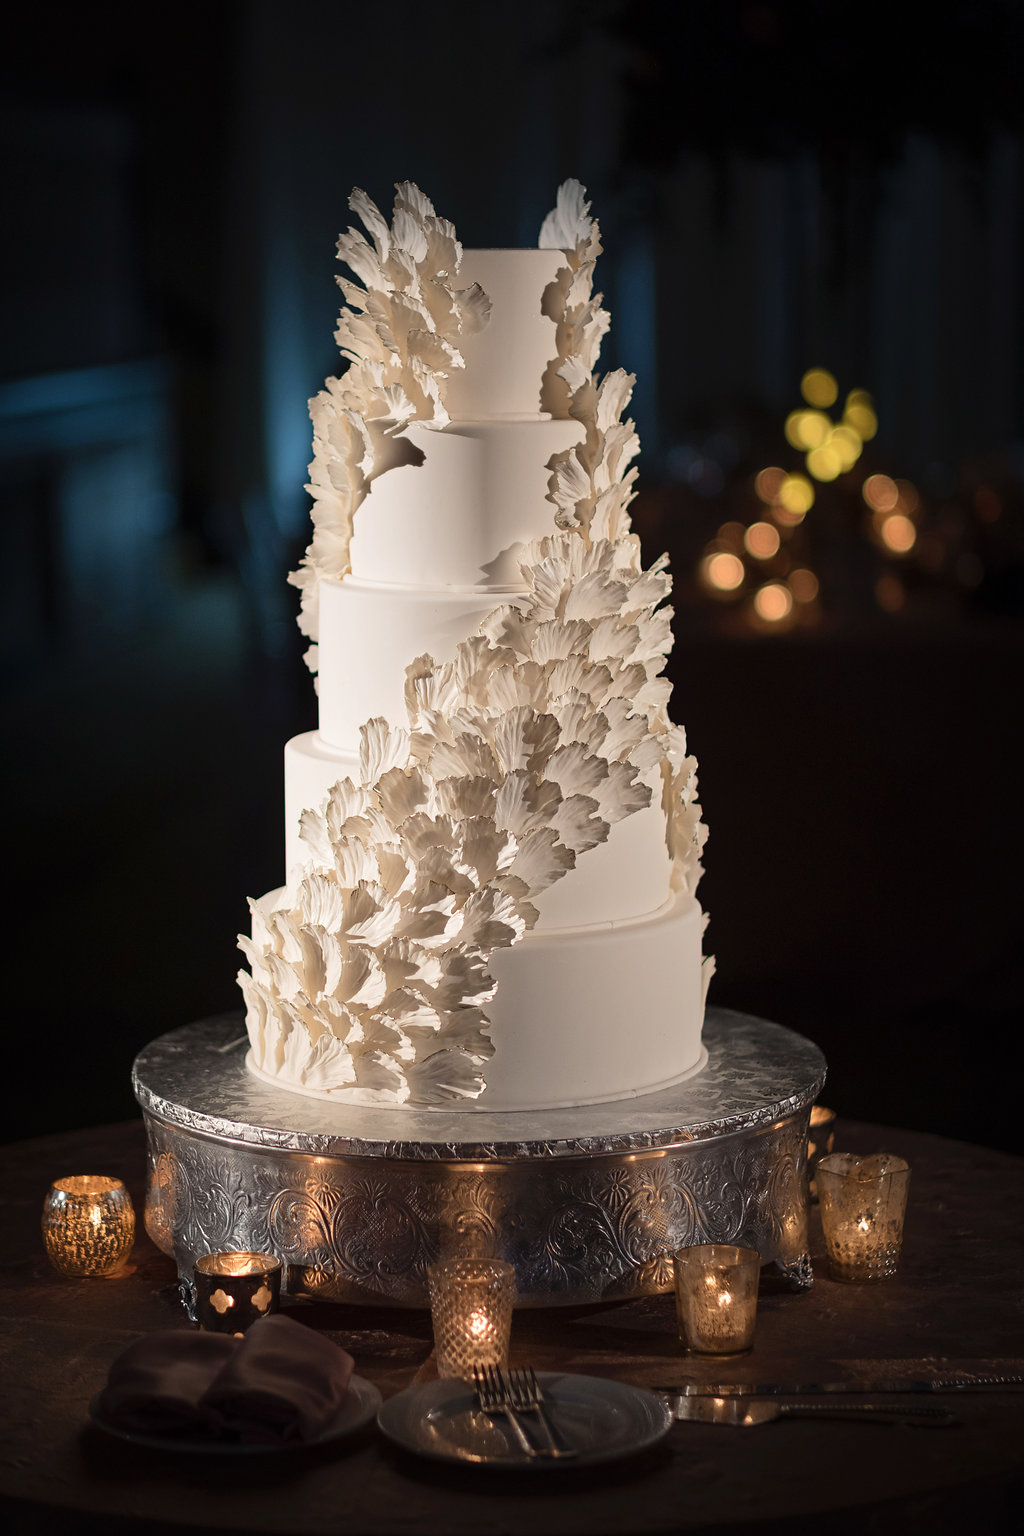 Five Tier Round White Wedding Cake with Feather Wing or Flower Petal Decorations on Silver Cake Stand with Votive Candles